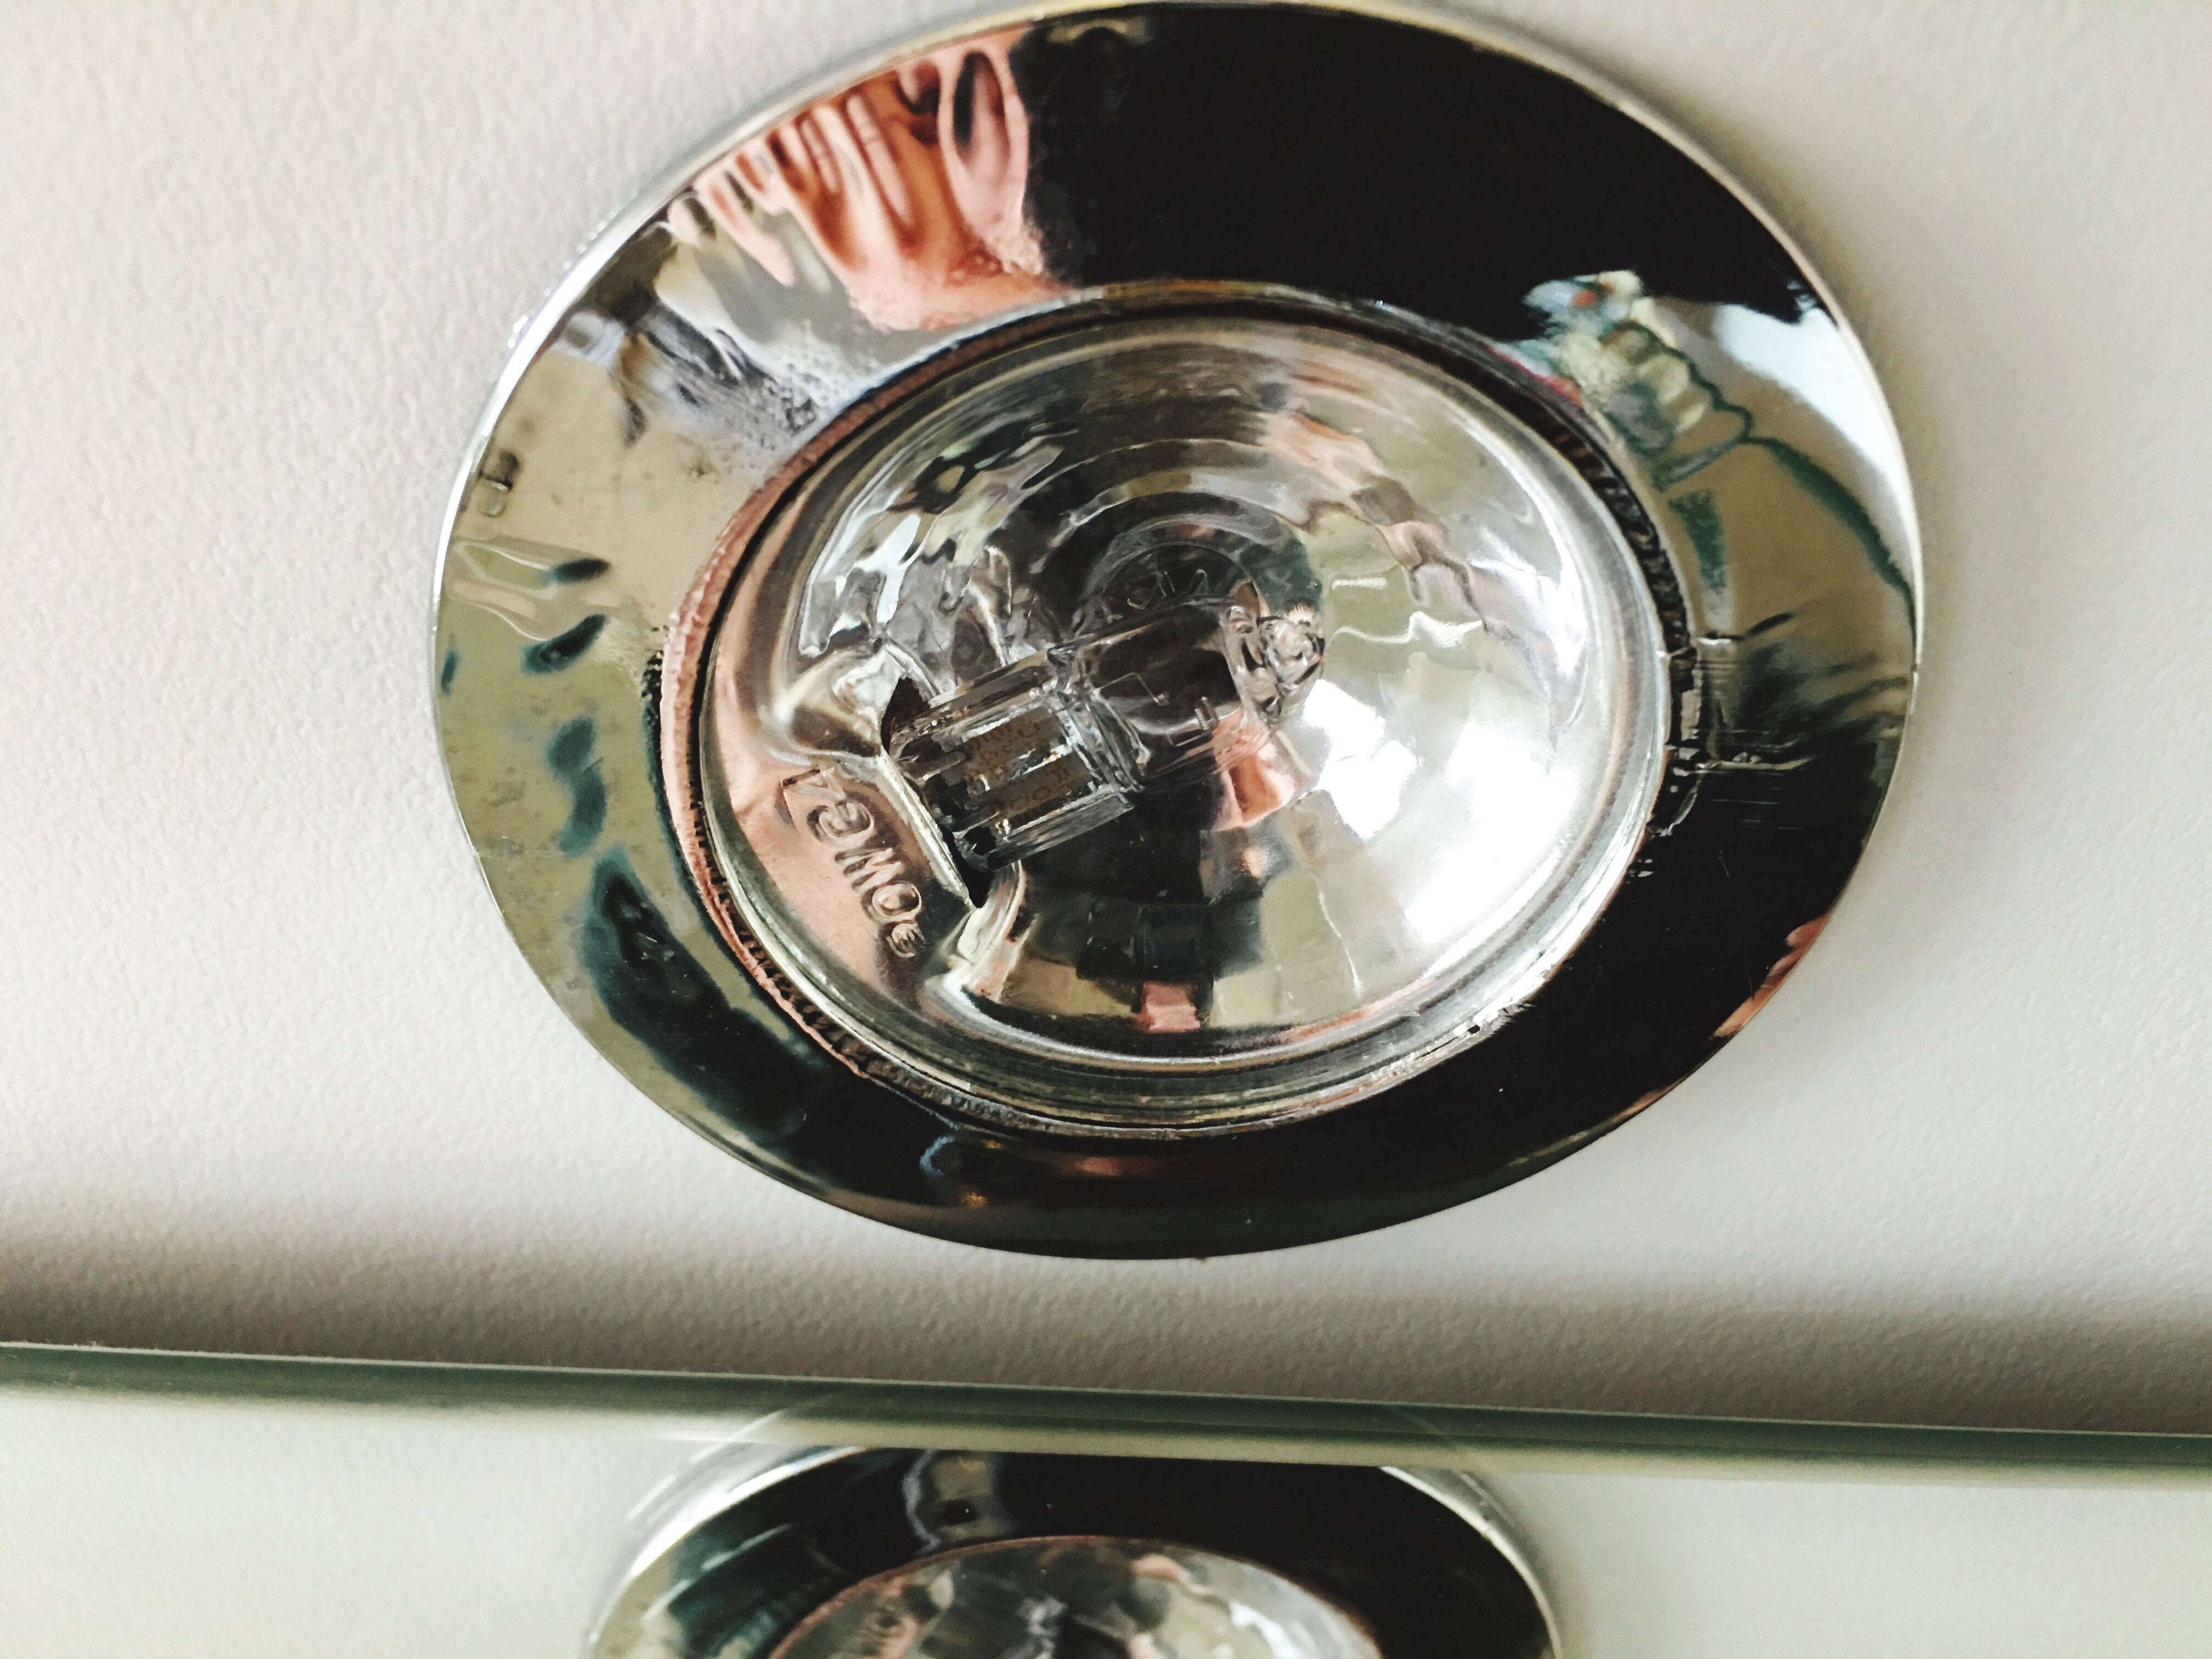 indoors, reflection, close-up, technology, glass - material, high angle view, circle, part of, mirror, photography themes, camera - photographic equipment, directly above, transparent, old-fashioned, metal, photographing, sink, person